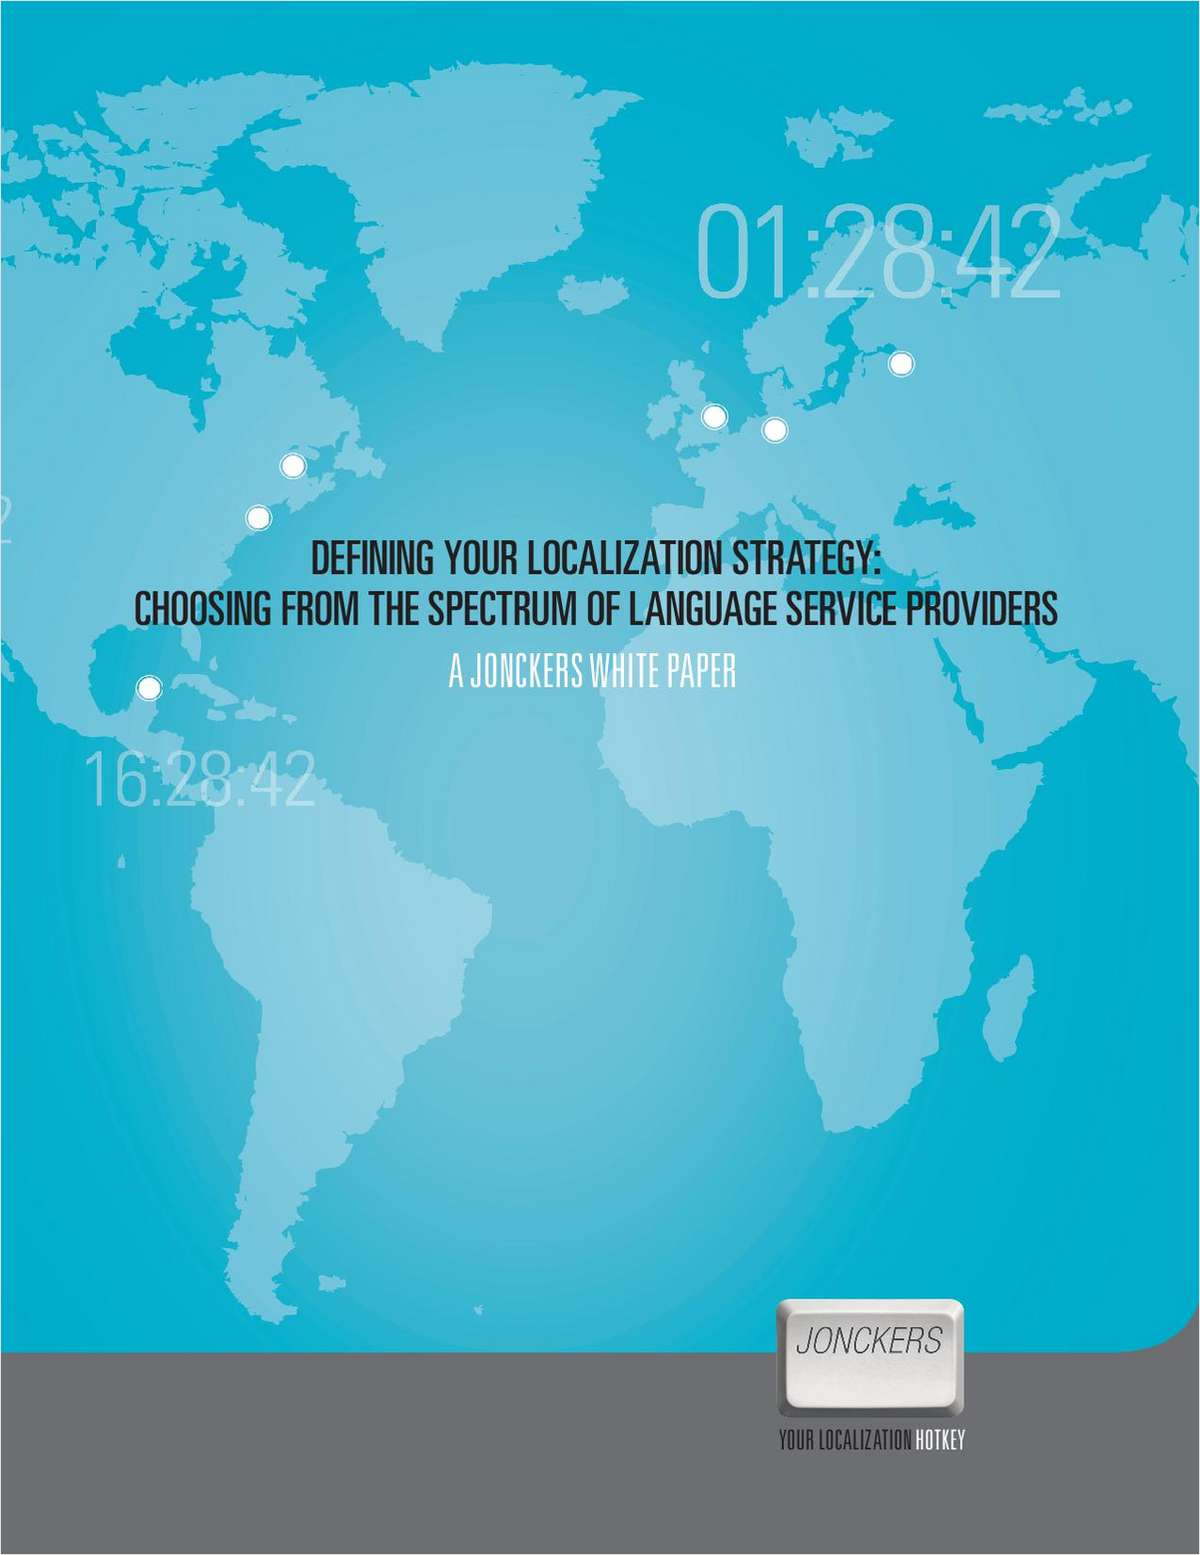 Defining Your Localization Strategy: Choosing From the Spectrum of Language Service Providers